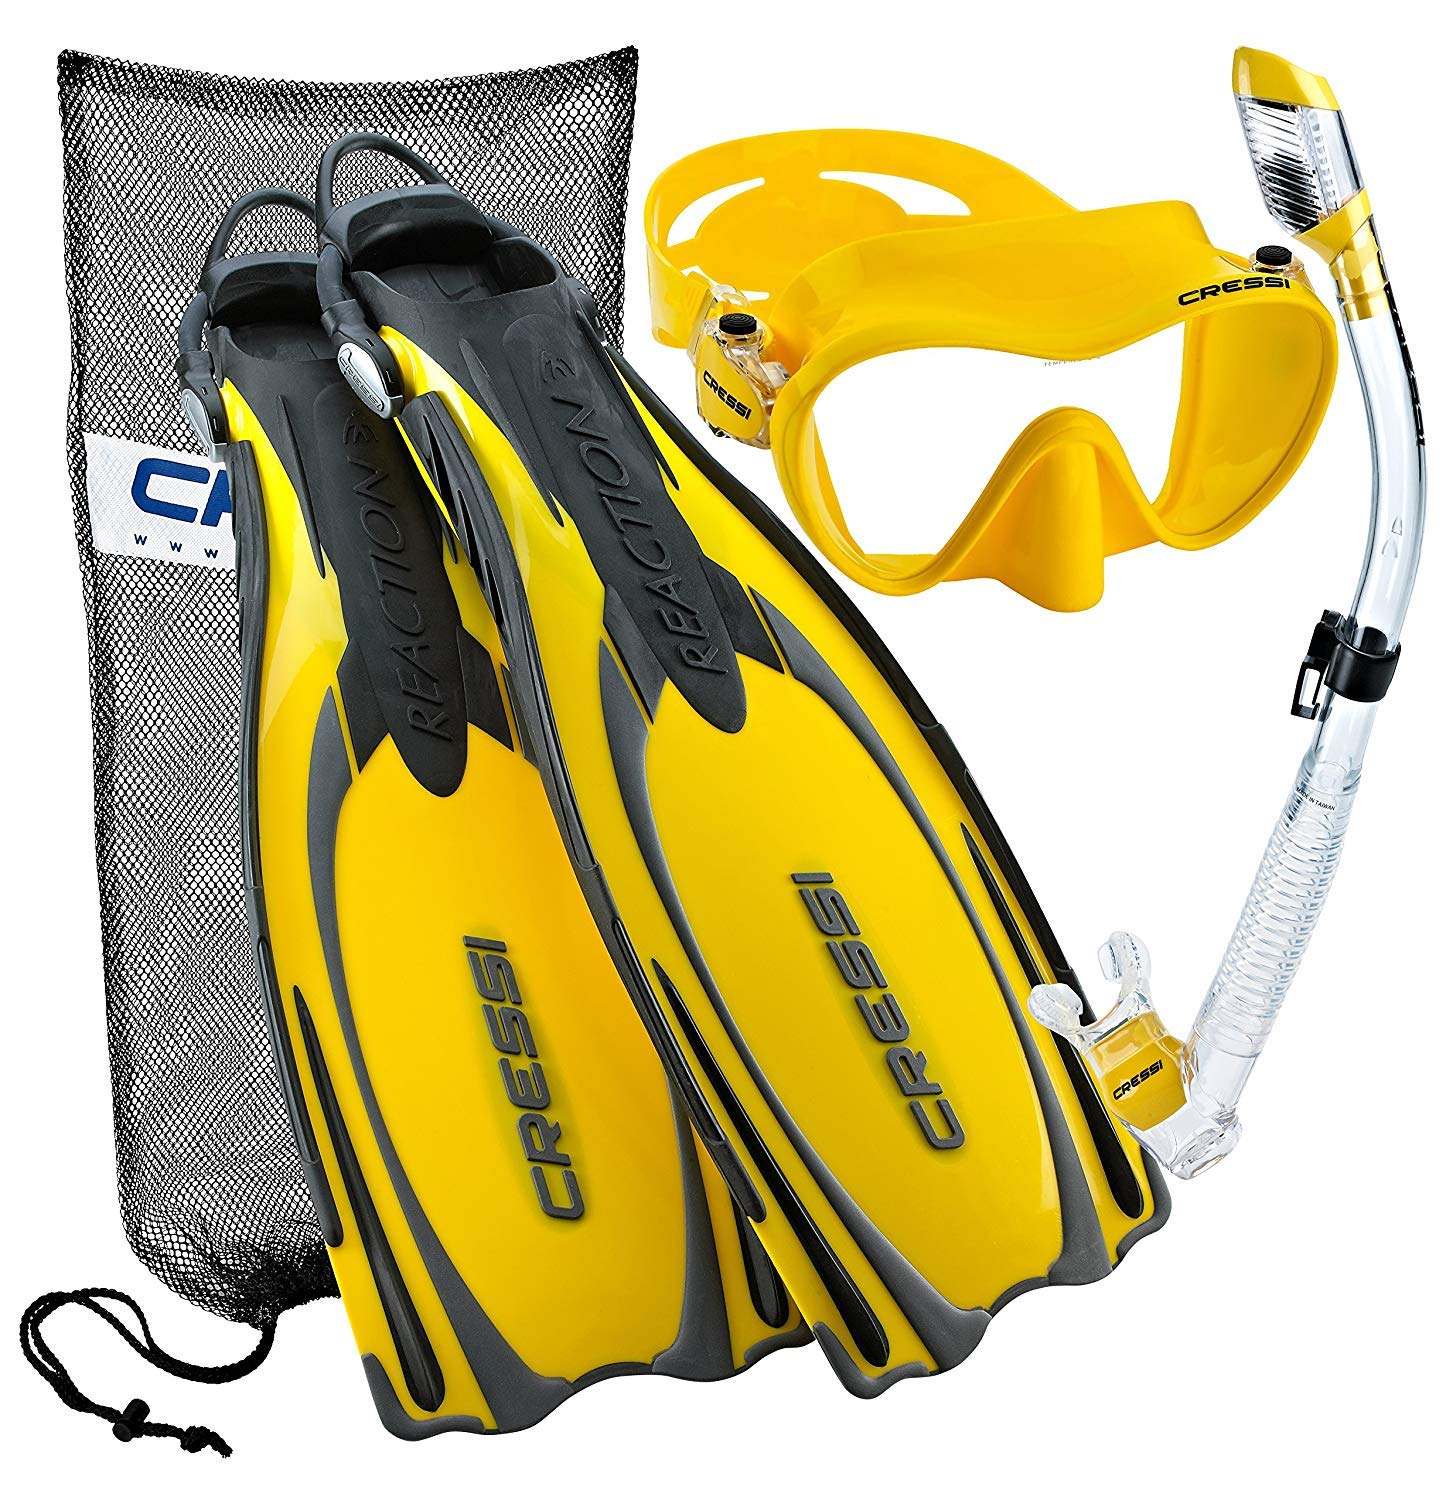 Cressi Reaction EBS Adjustable Mask Fin Dry Snorkel Scuba Gear Set, Yellow, Small/Medium by Cressi